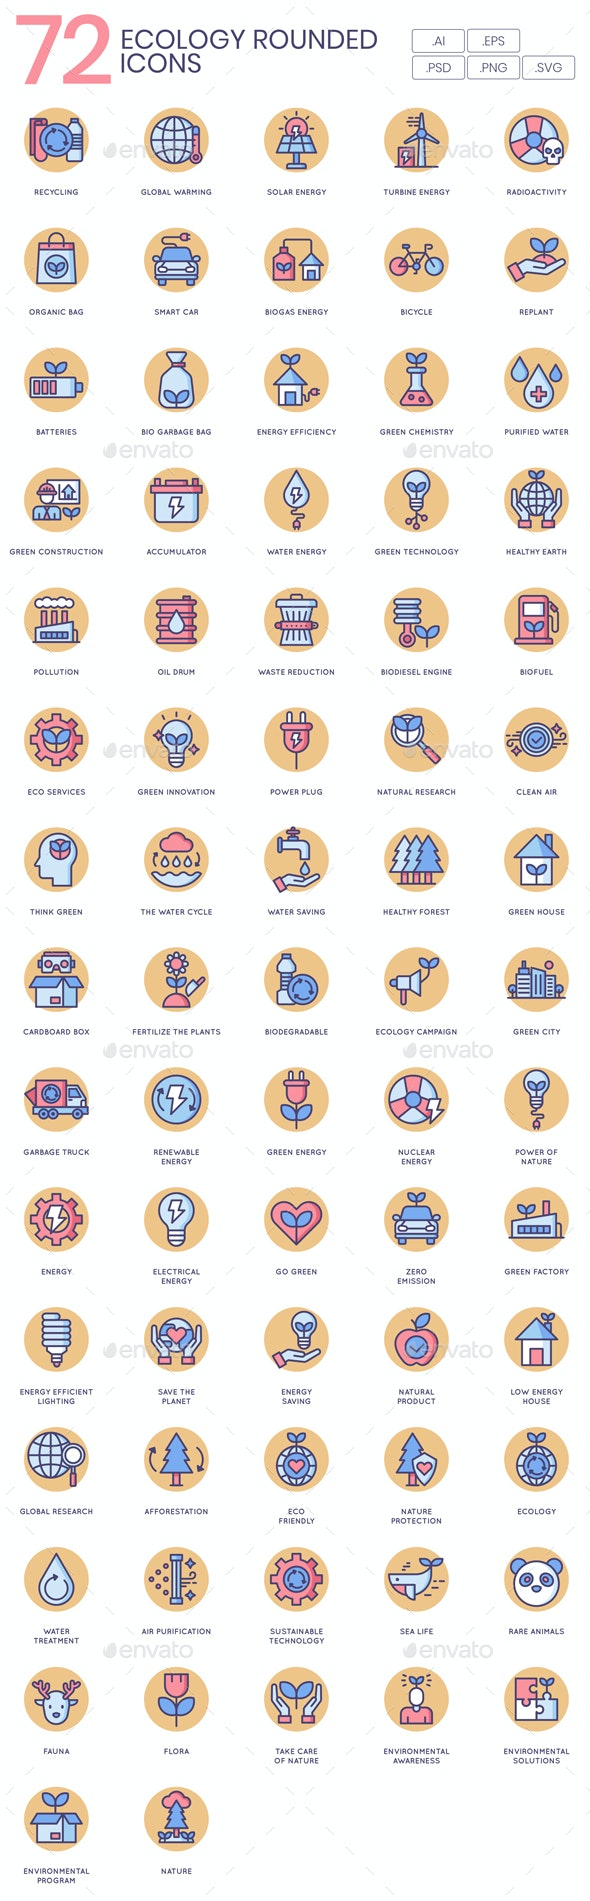 Ecology Icons - Butterscotch - Technology Icons